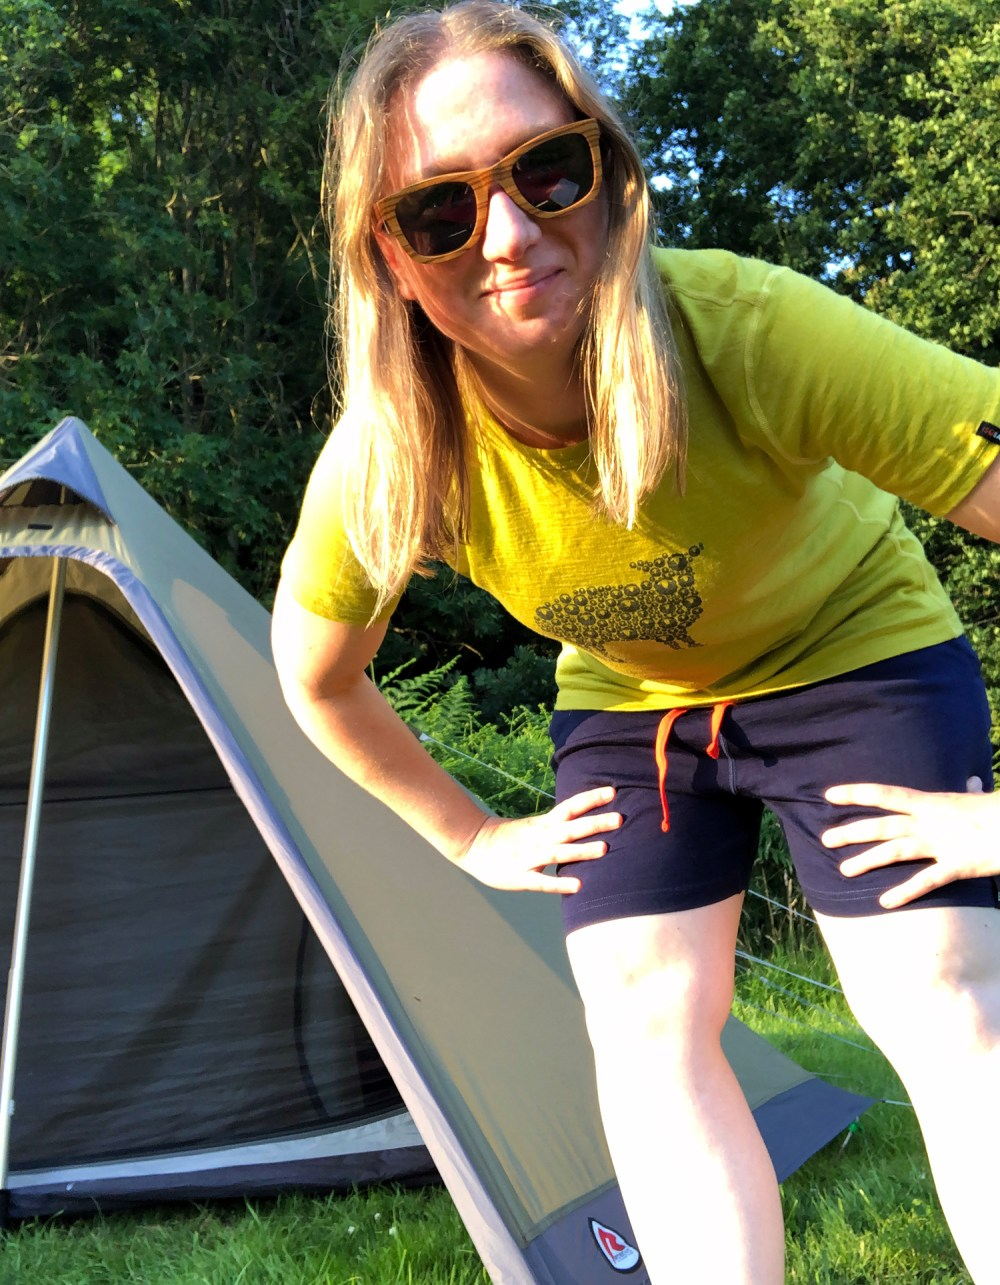 Splodz Blogz | Showing off my Isobaa Shorts and Tee